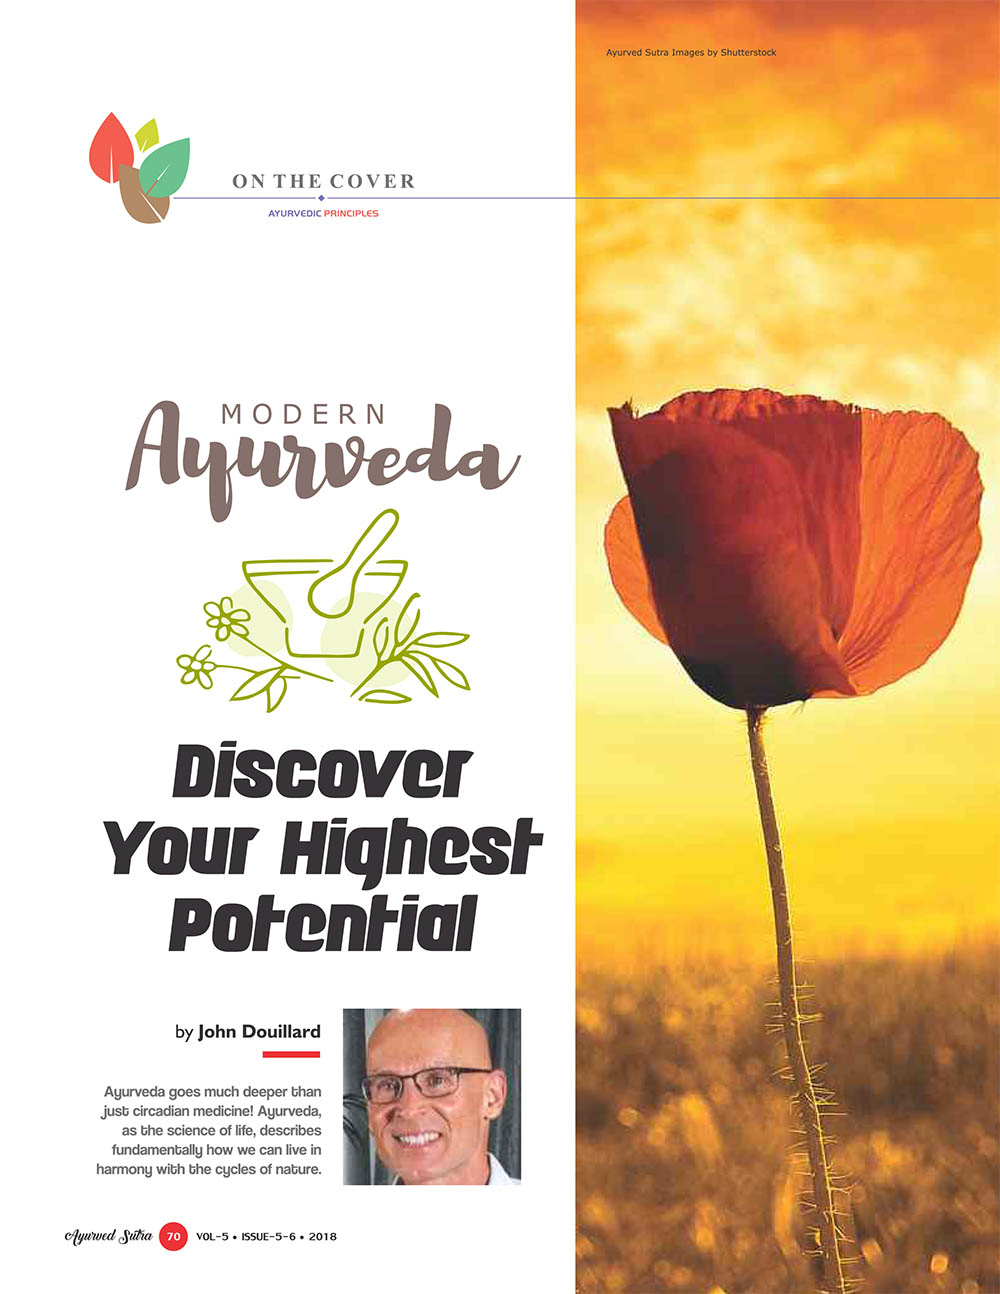 Ayurvedsutra Vol 05 issue 05 06 72 - Discover Your Highest Potential